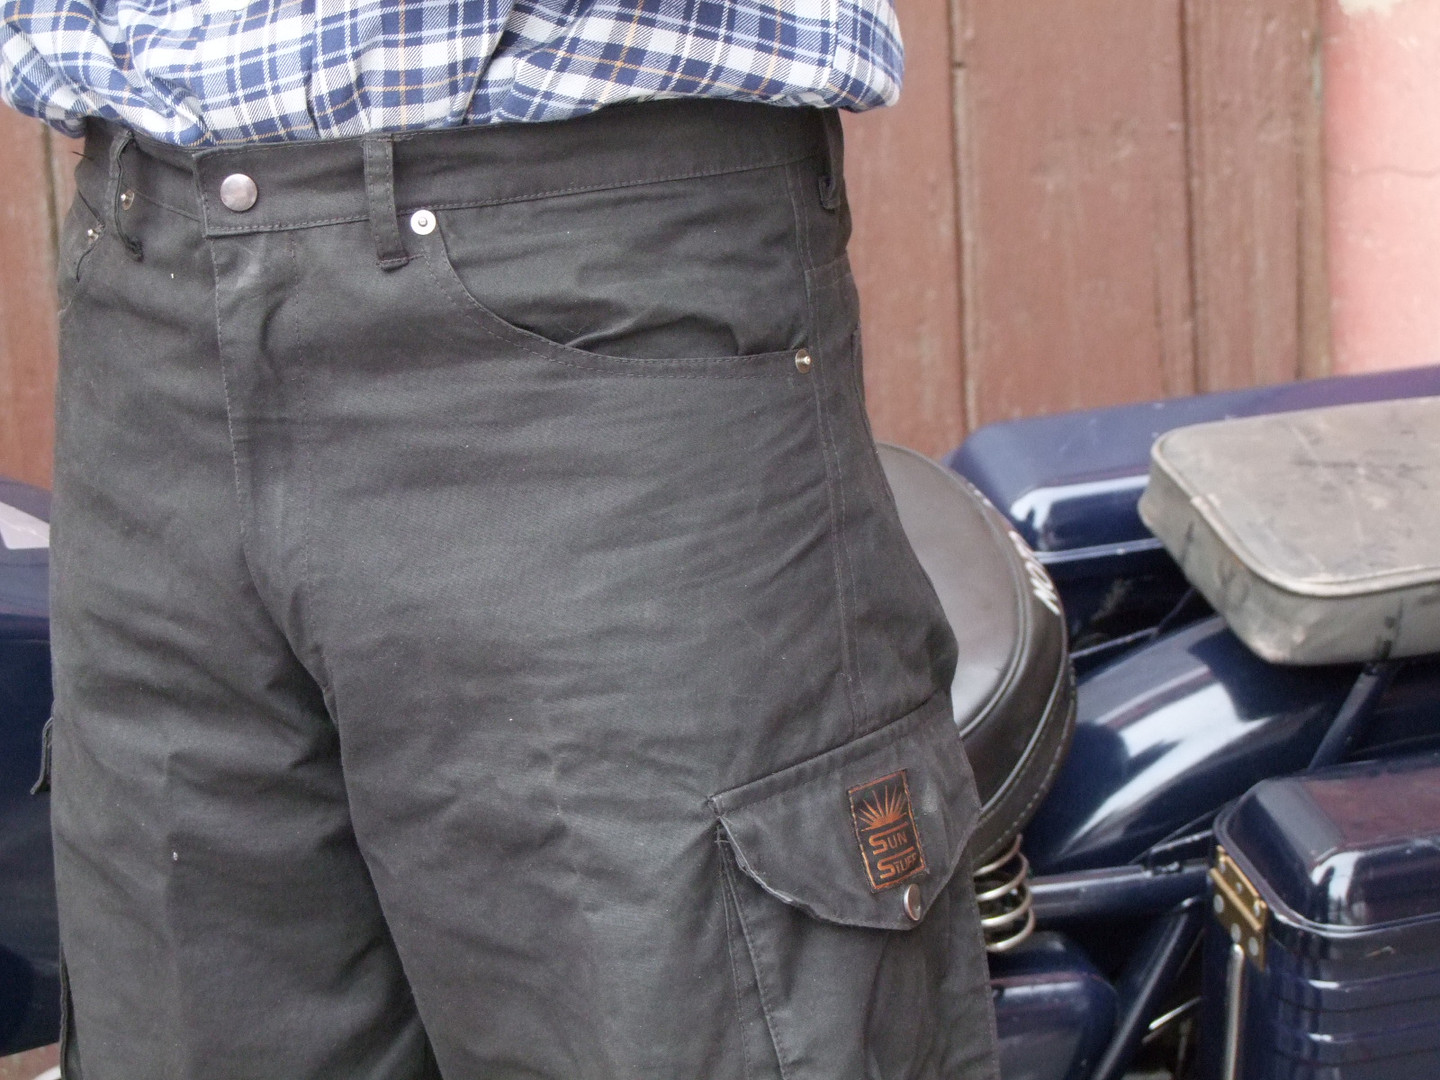 front Jeans.JPG